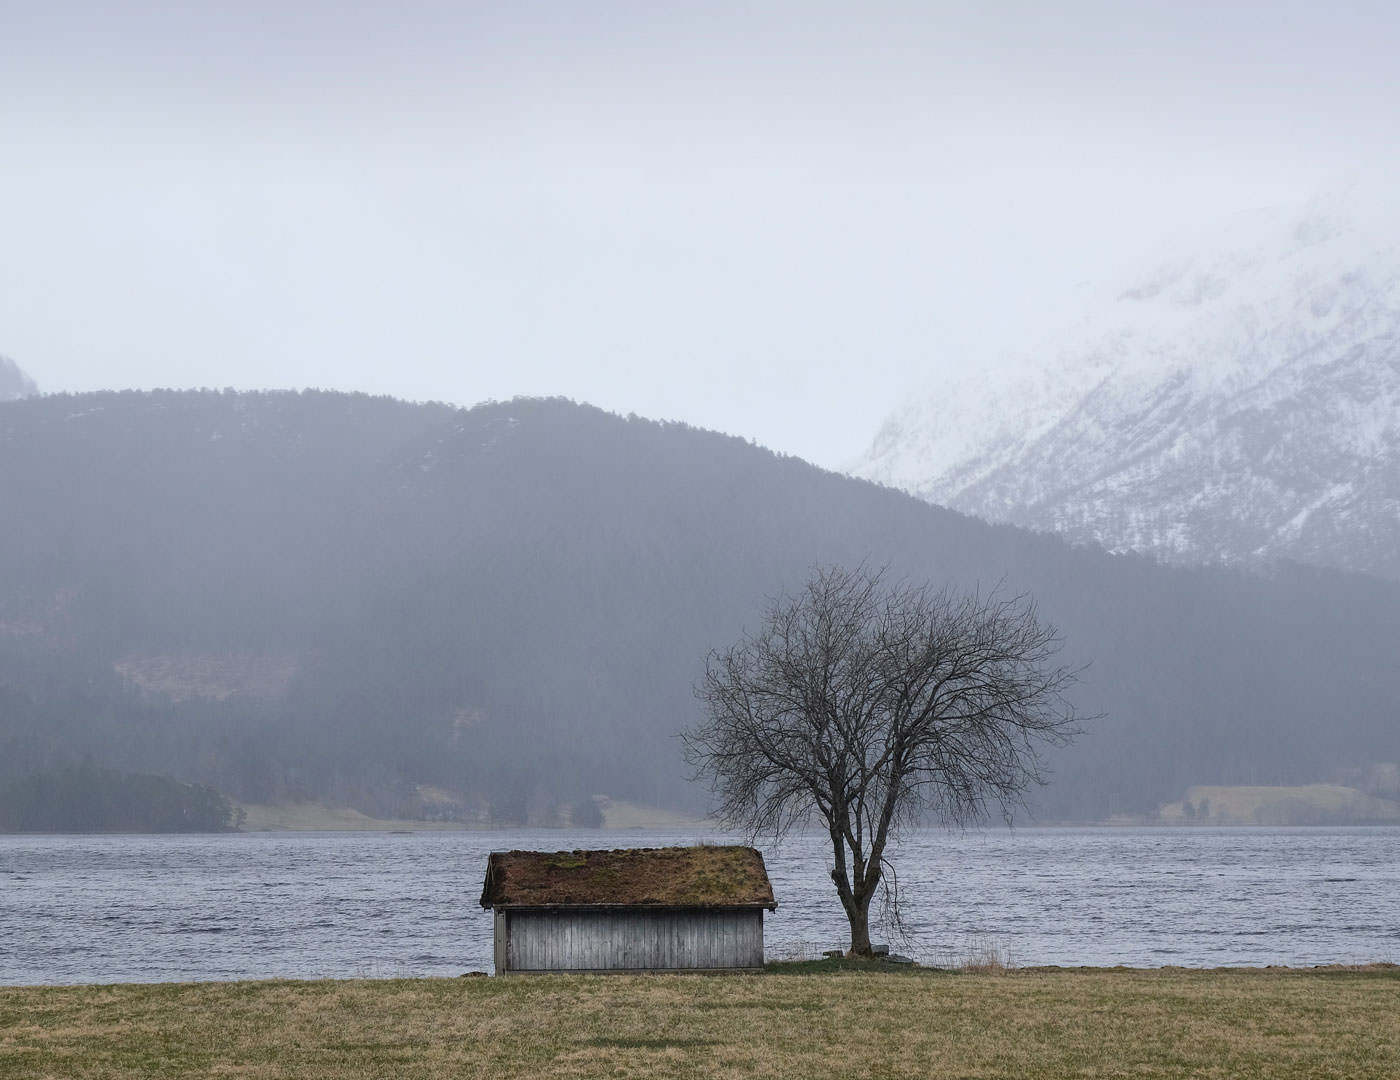 Cabin next to water and mountains